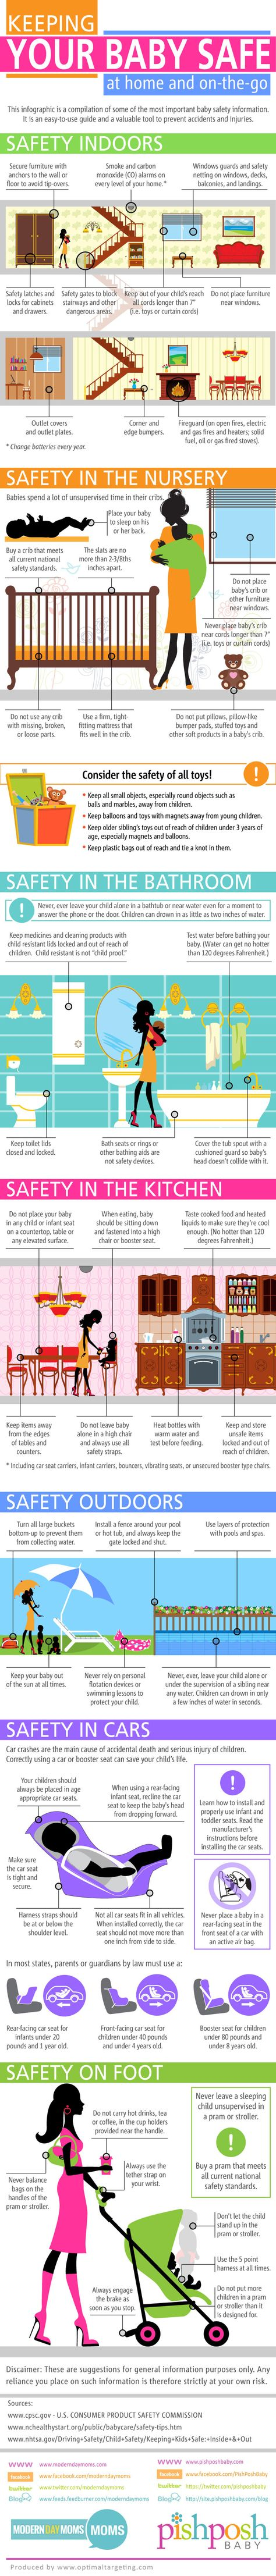 An infographic about baby safety, at home and elsewhere. Anyone who has a baby can learn many useful things from this guide to important baby safety information.